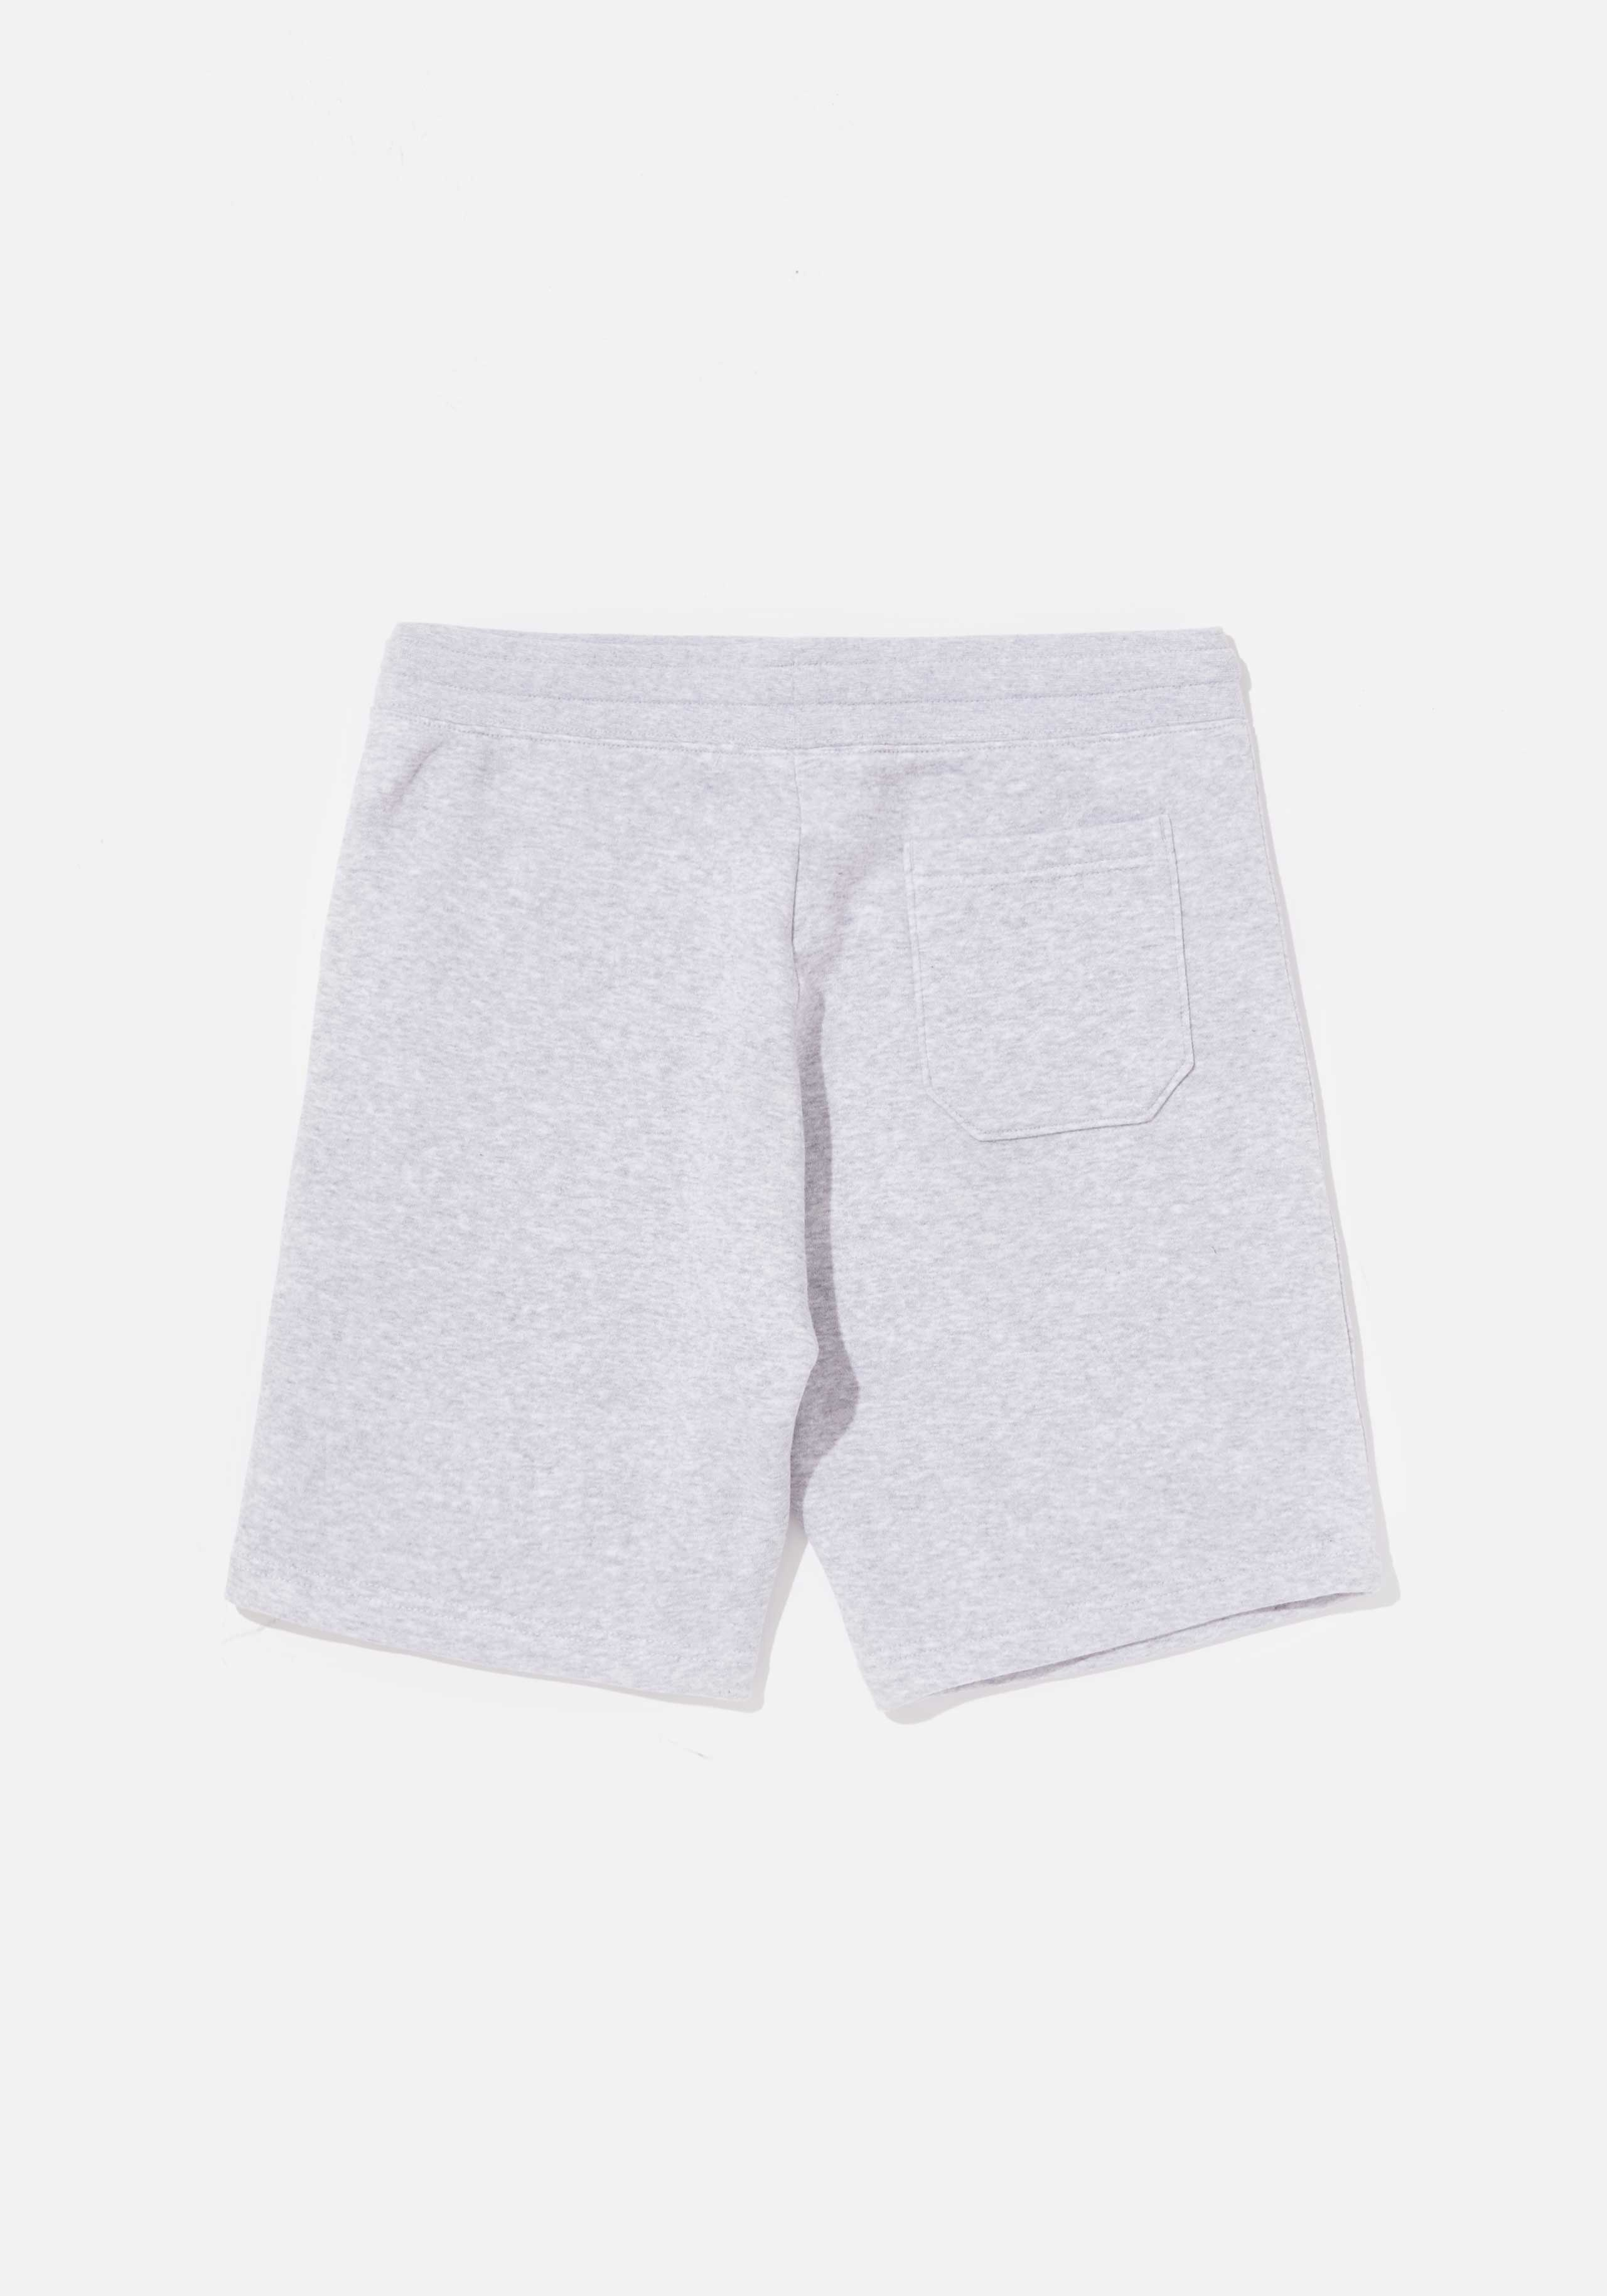 mki relaxed basic shorts 2